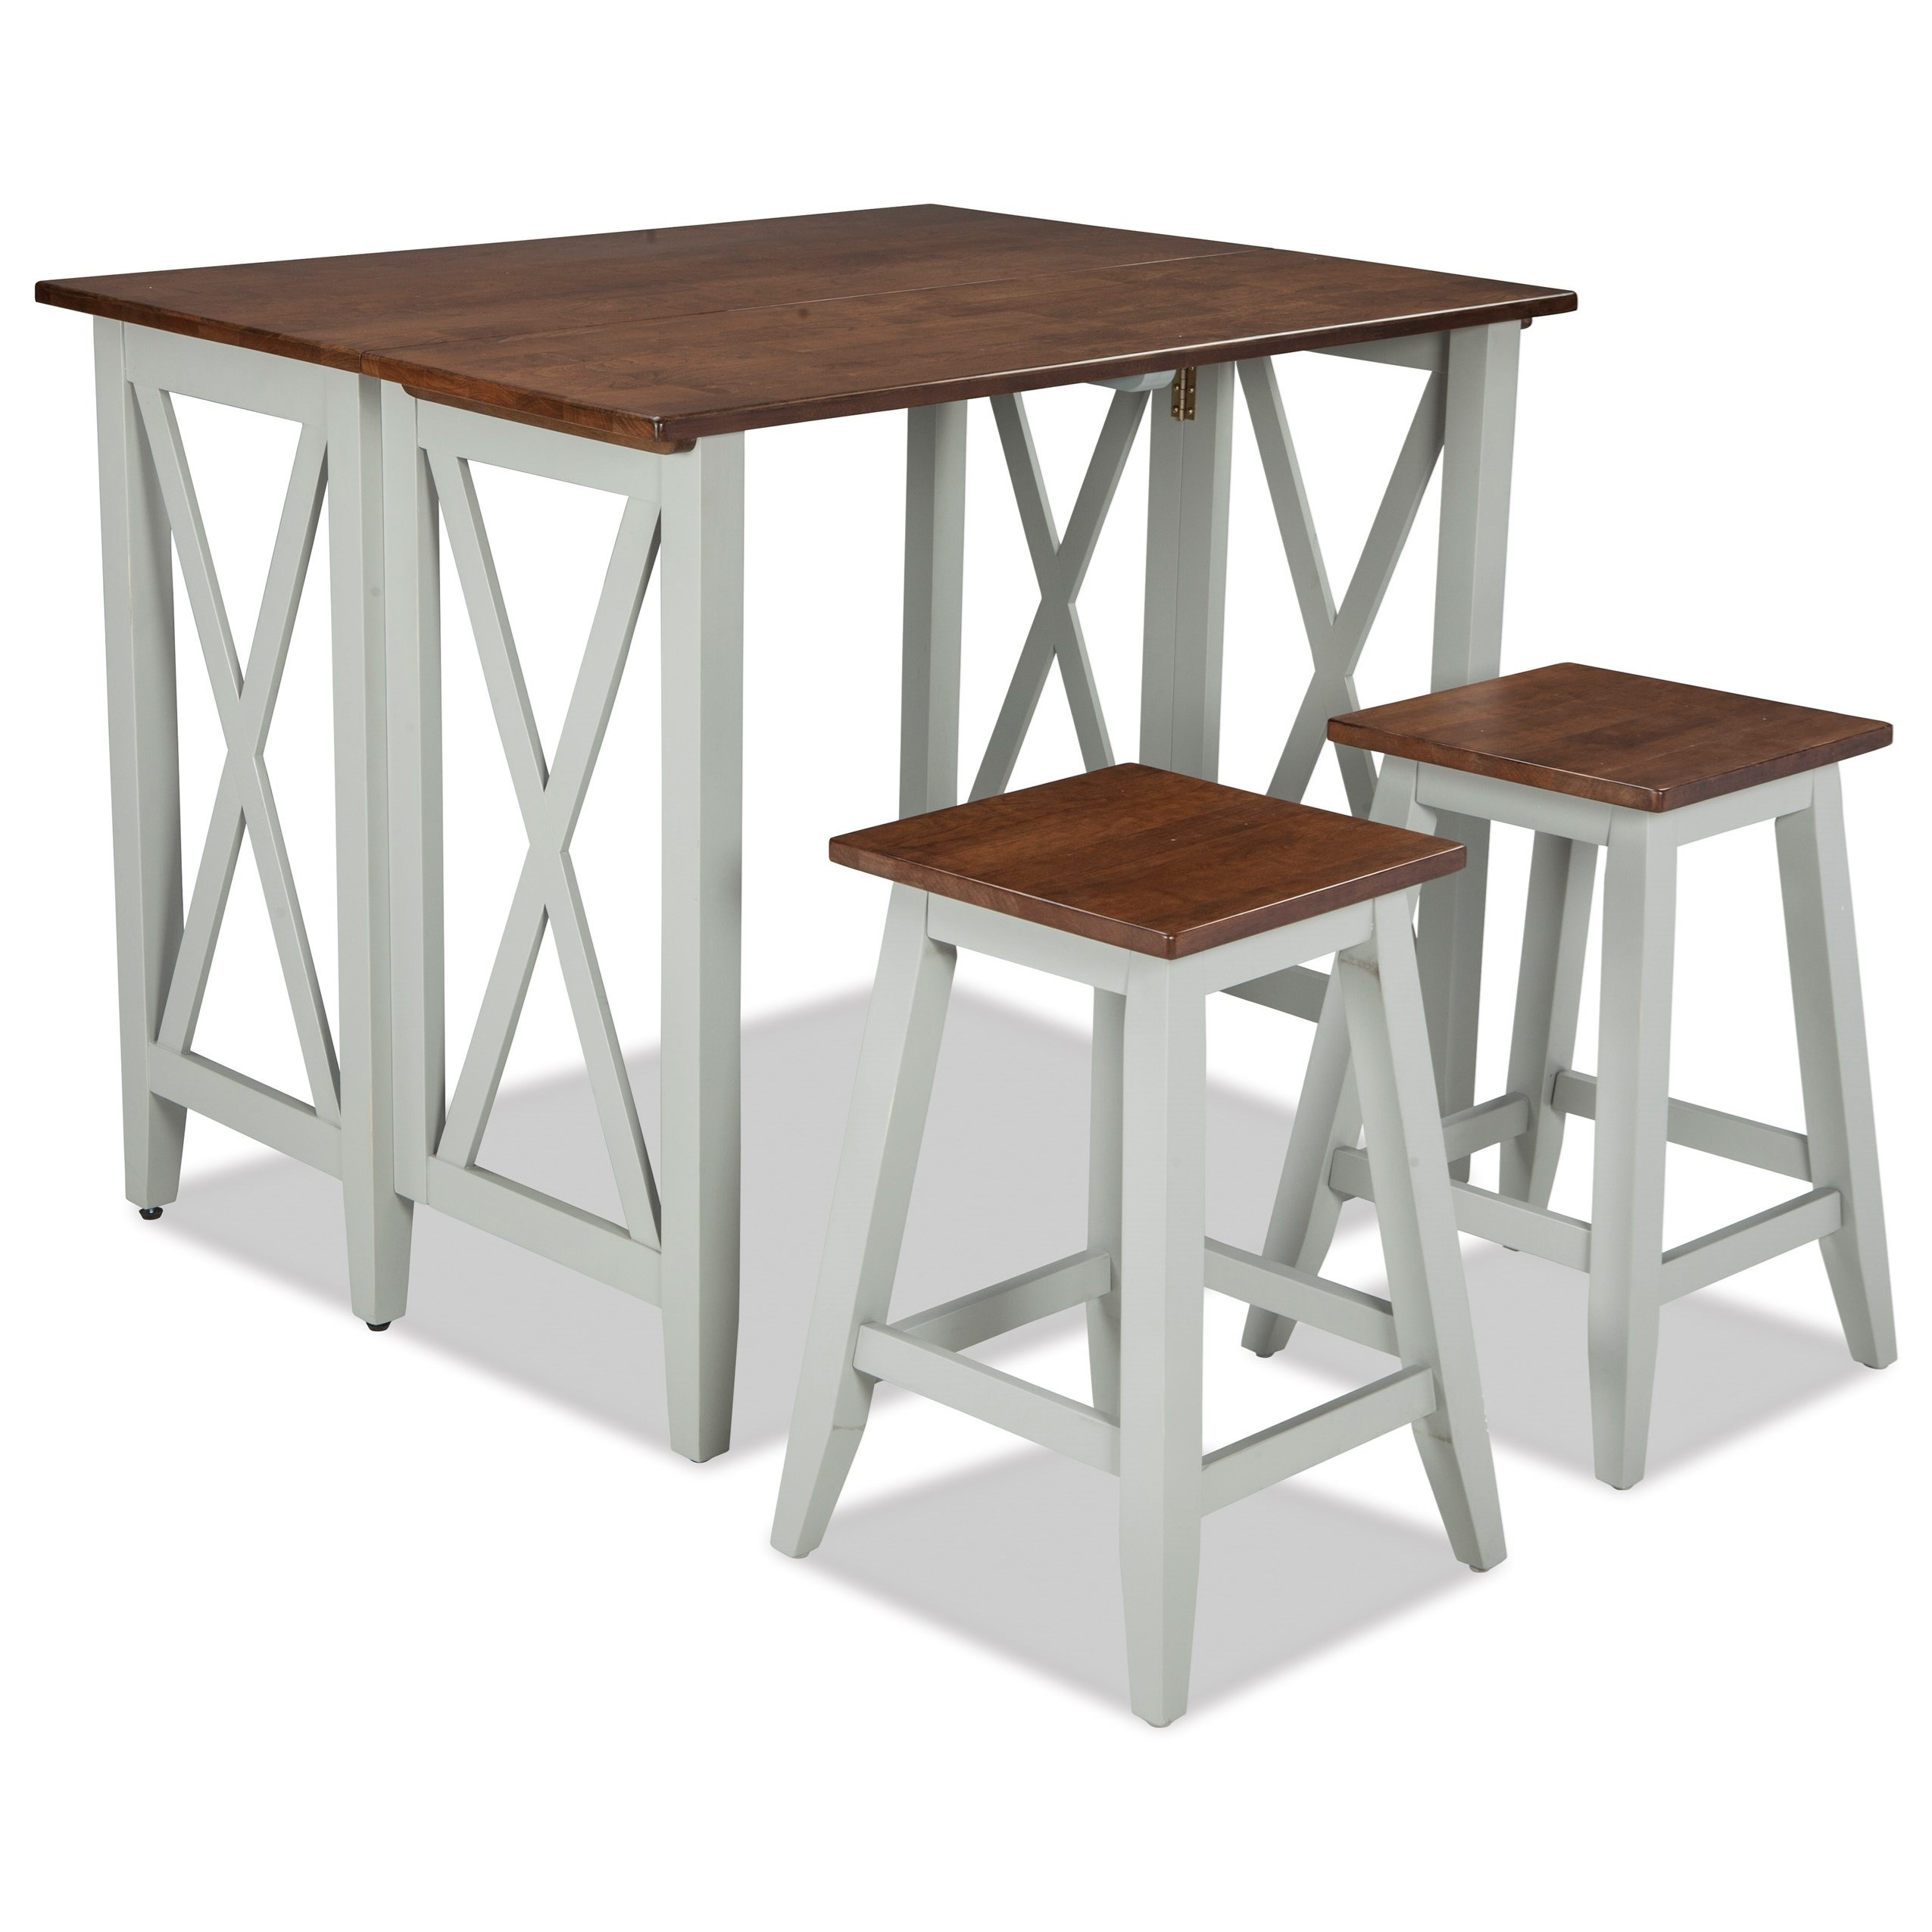 Intercon Small Space 3 Piece Drop Leaf Breakfast Bar And